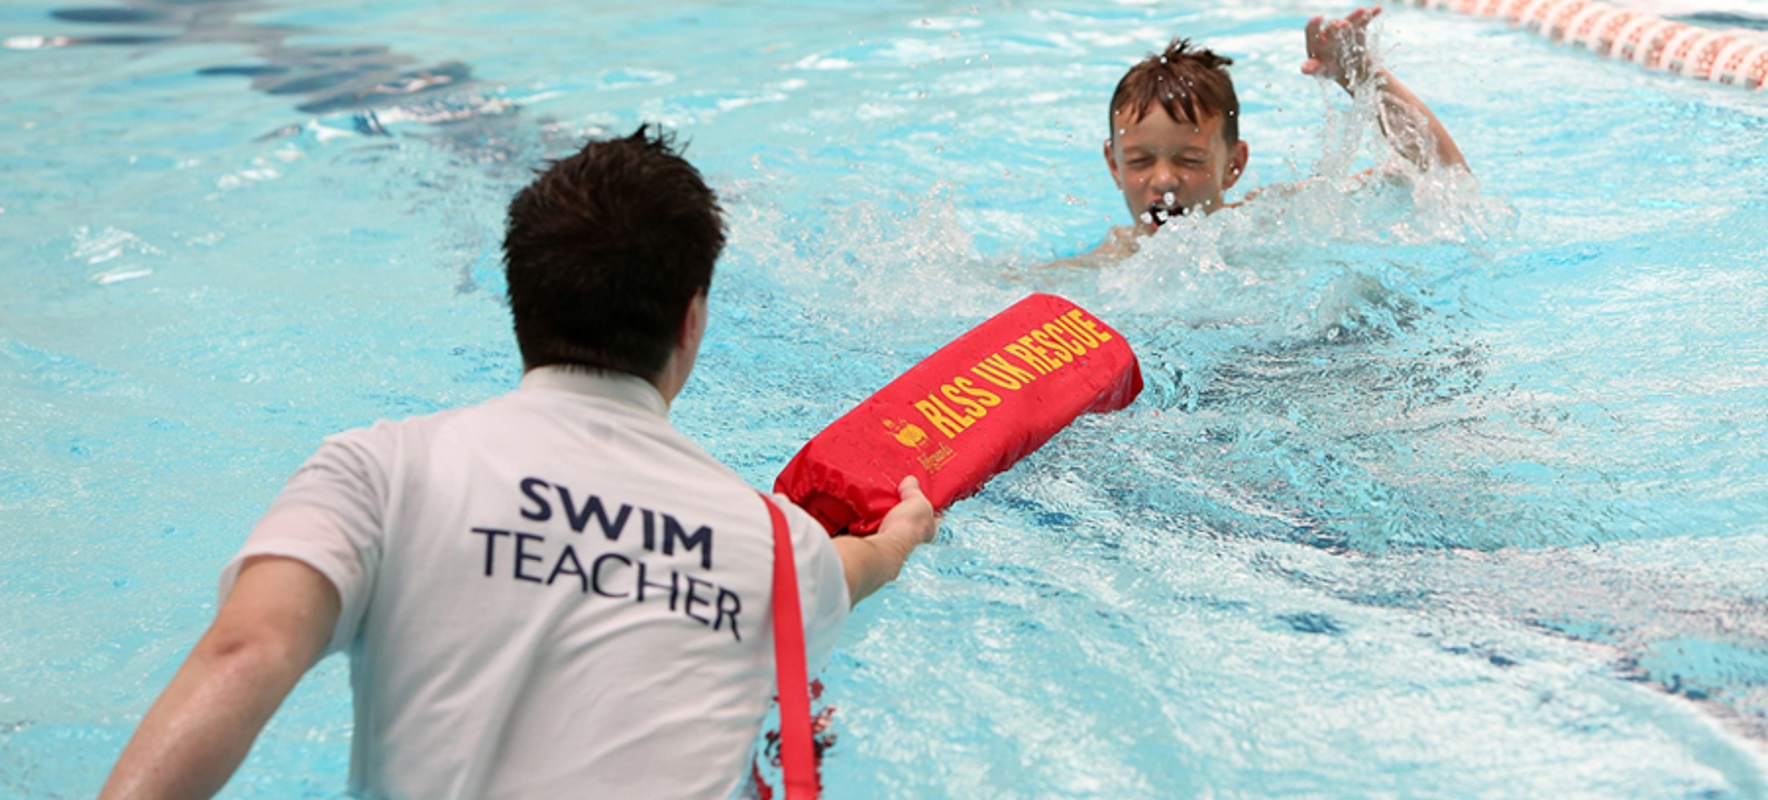 New National Rescue Award for Swimming Teachers and Coaches